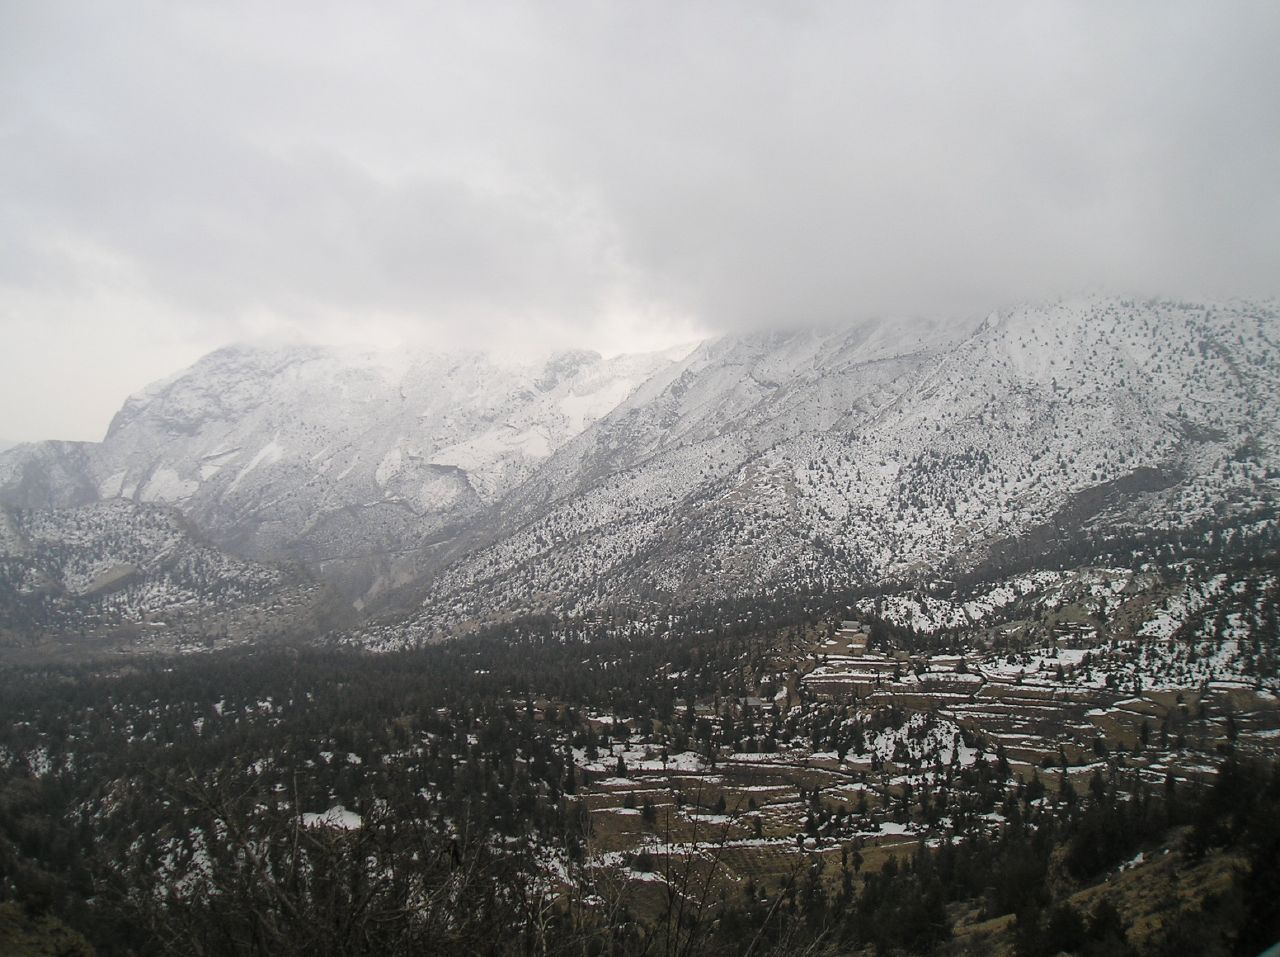 Ziarat in the winter